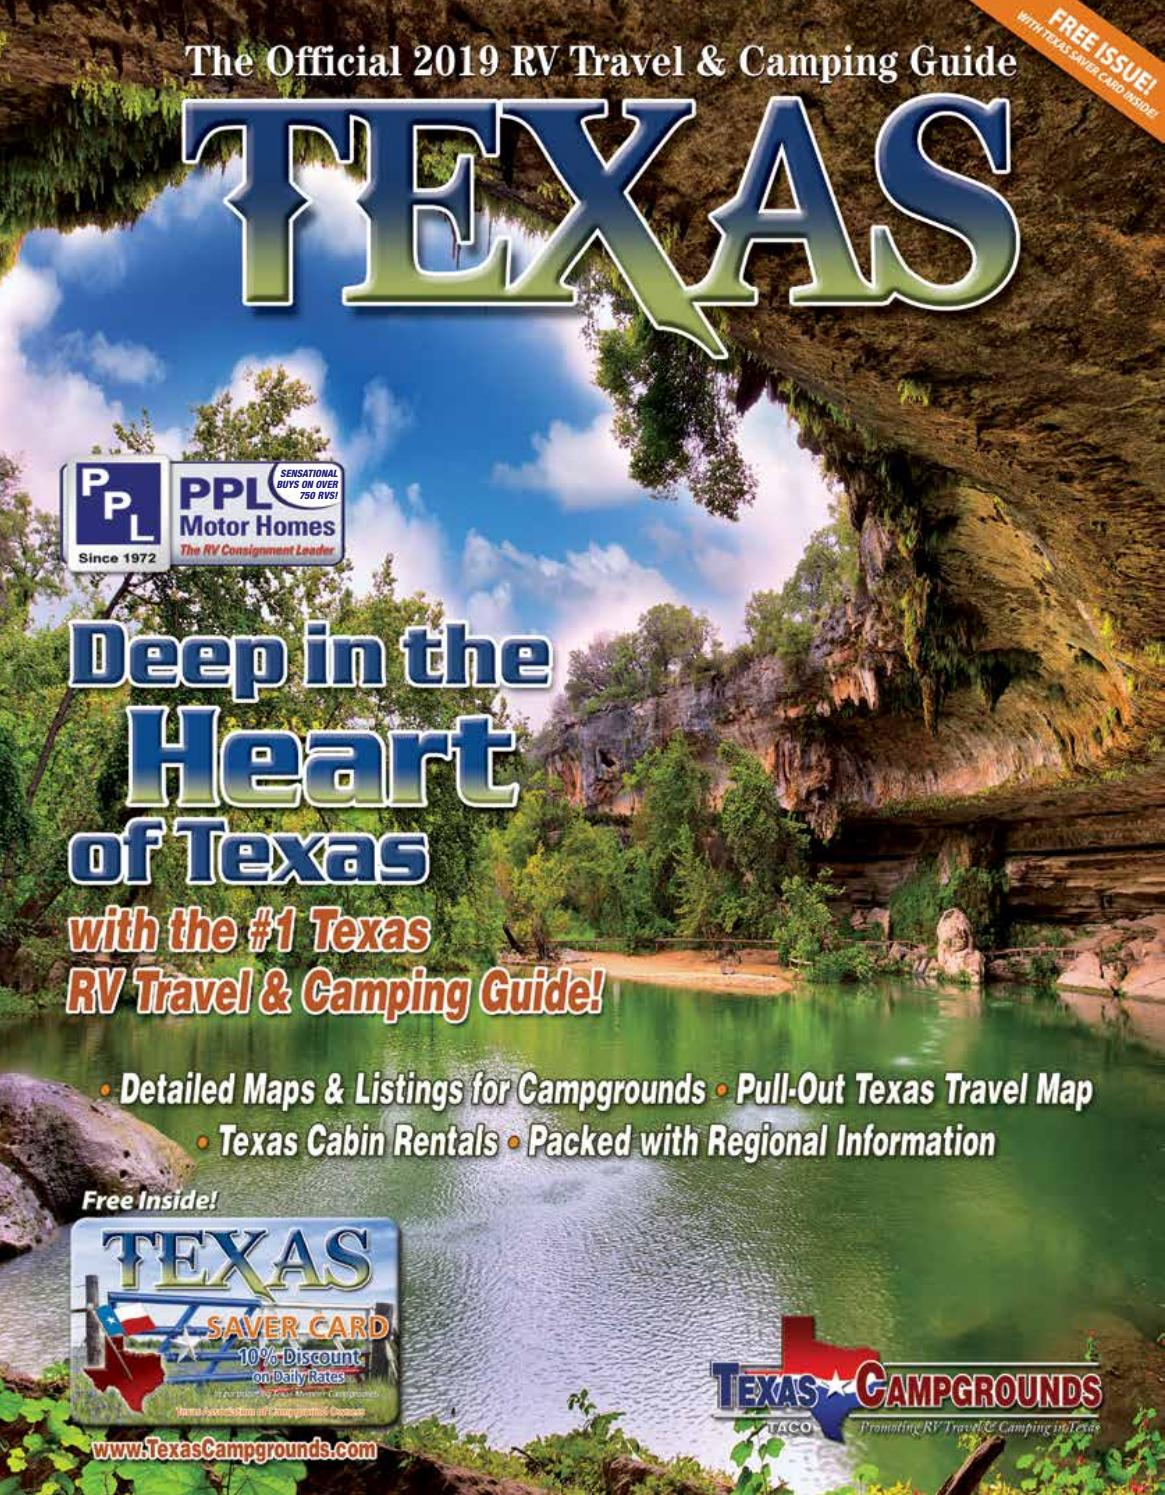 2019 RV Travel & Camping Guide to Texas by AGS/Texas